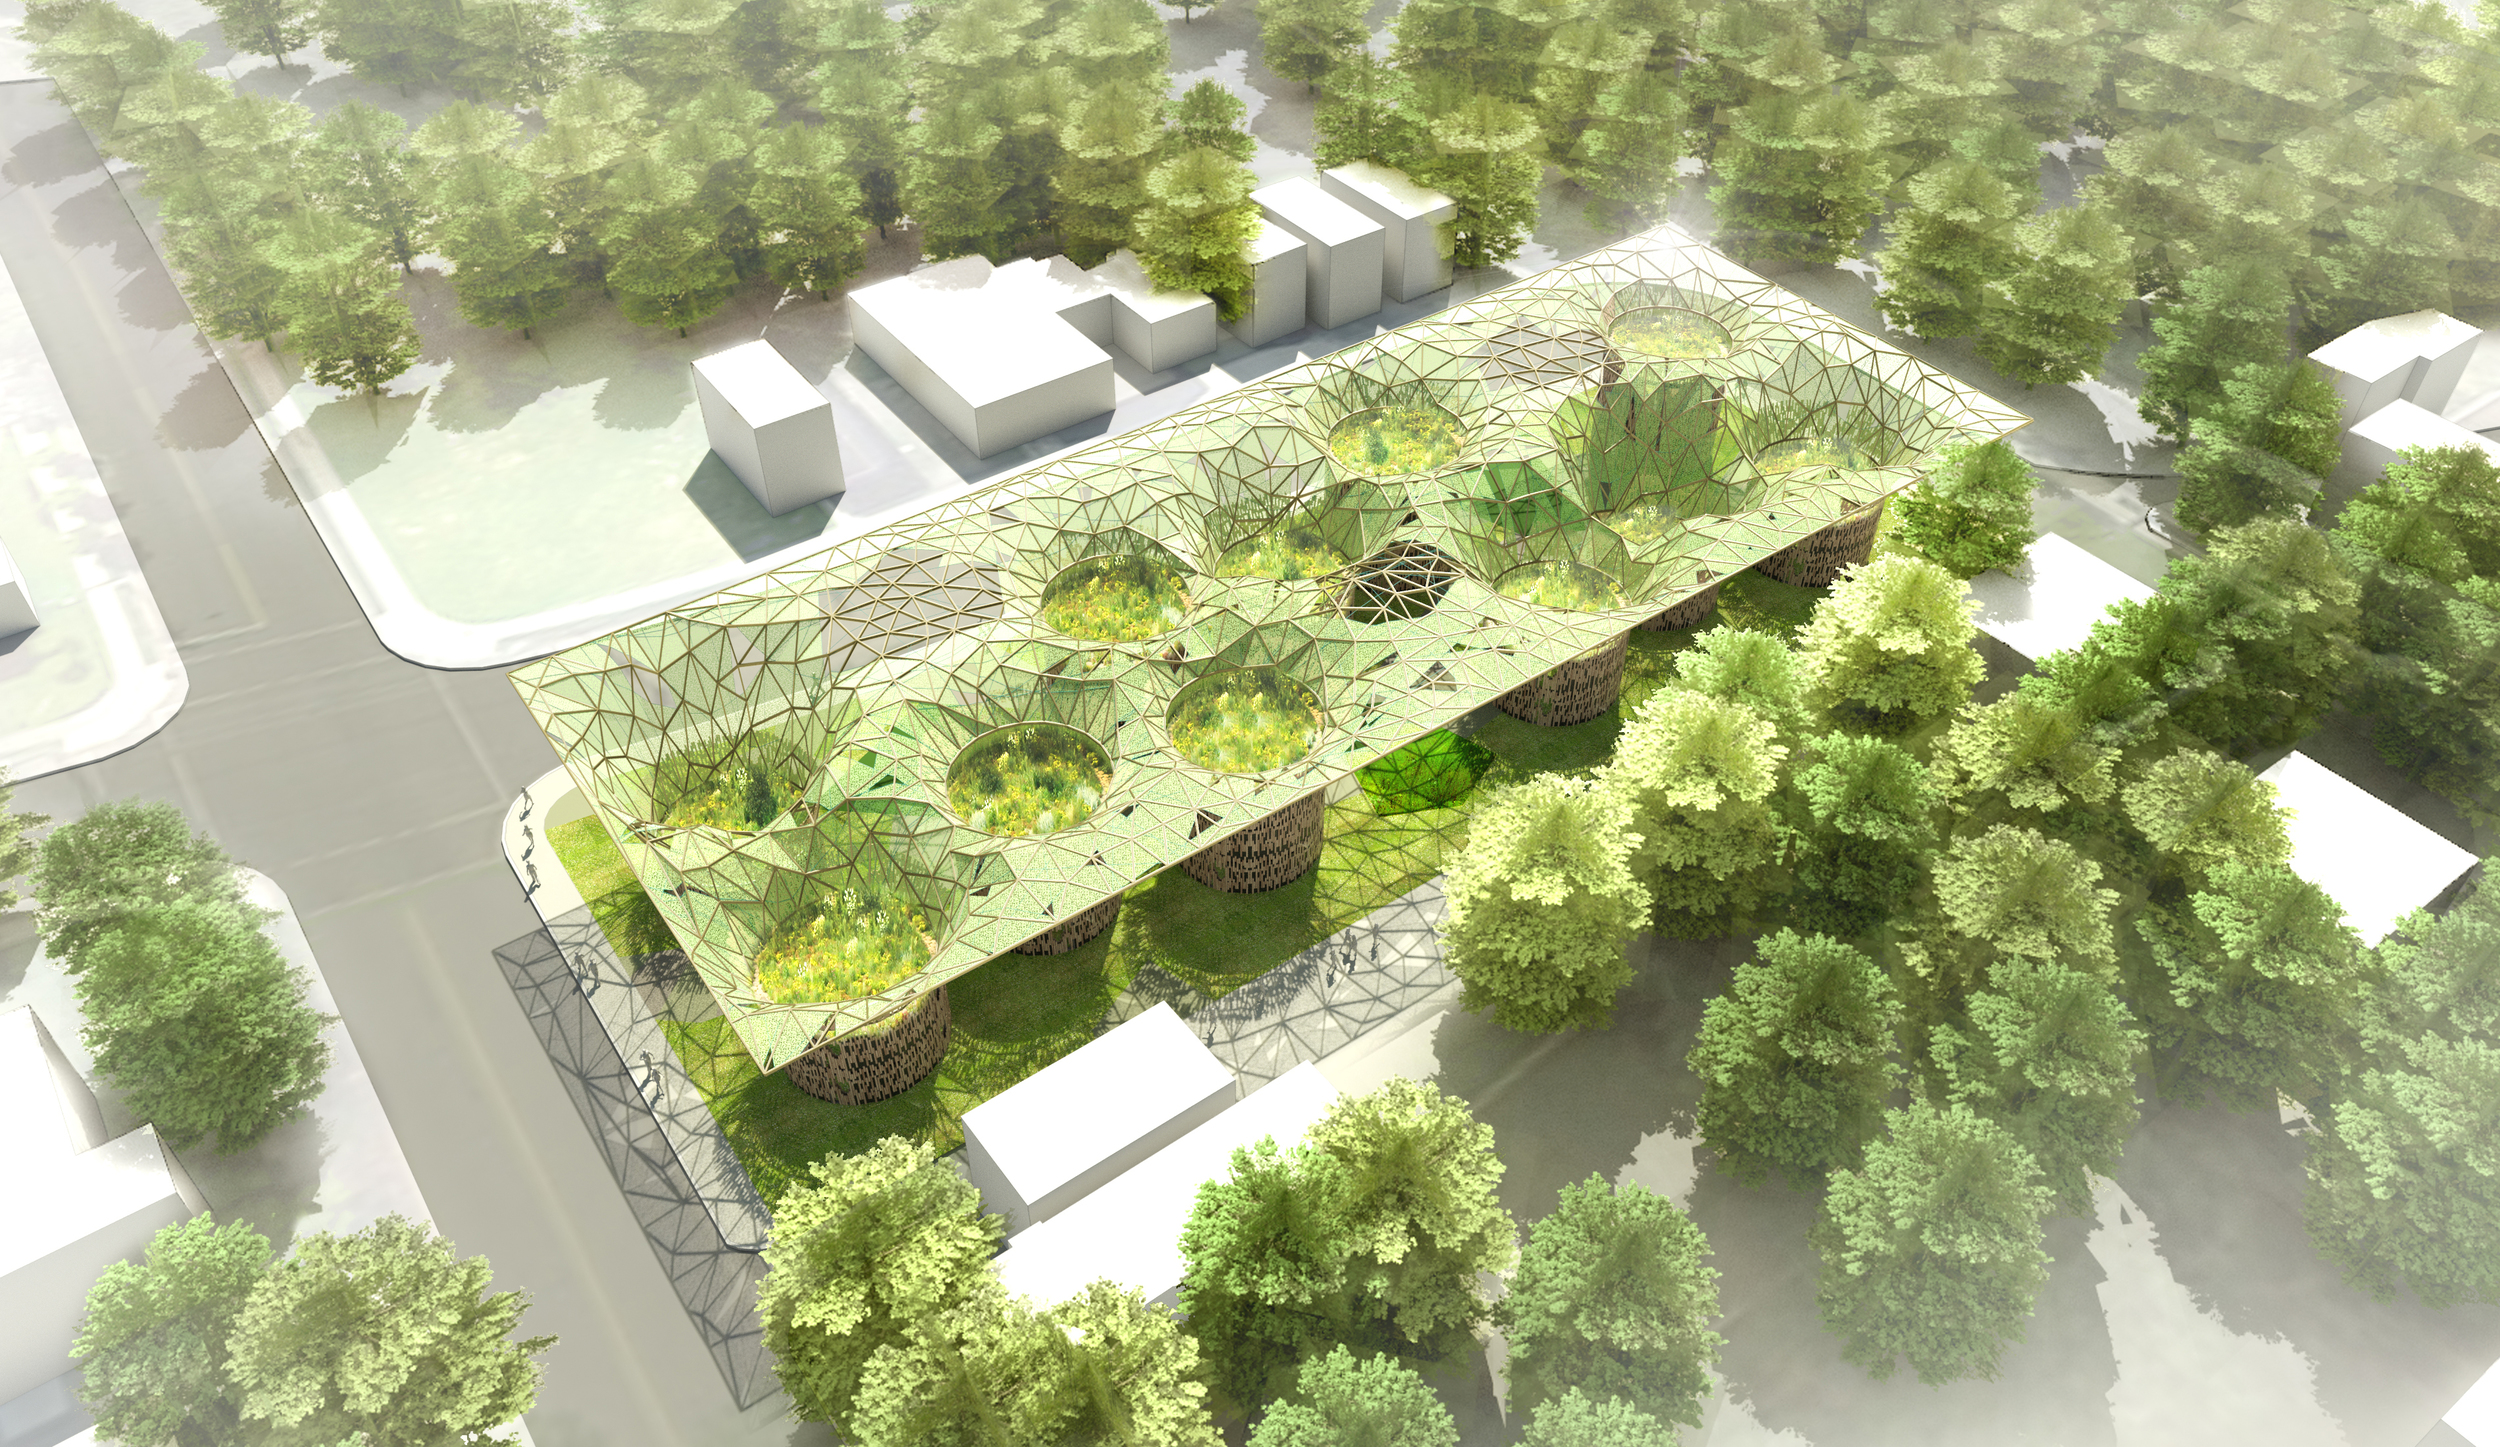 POPULUS:  AFFORDABLE LIVING DESIGN CHALLENGE  Washington, DC |  Collaboration with Make DC, Engenium Group